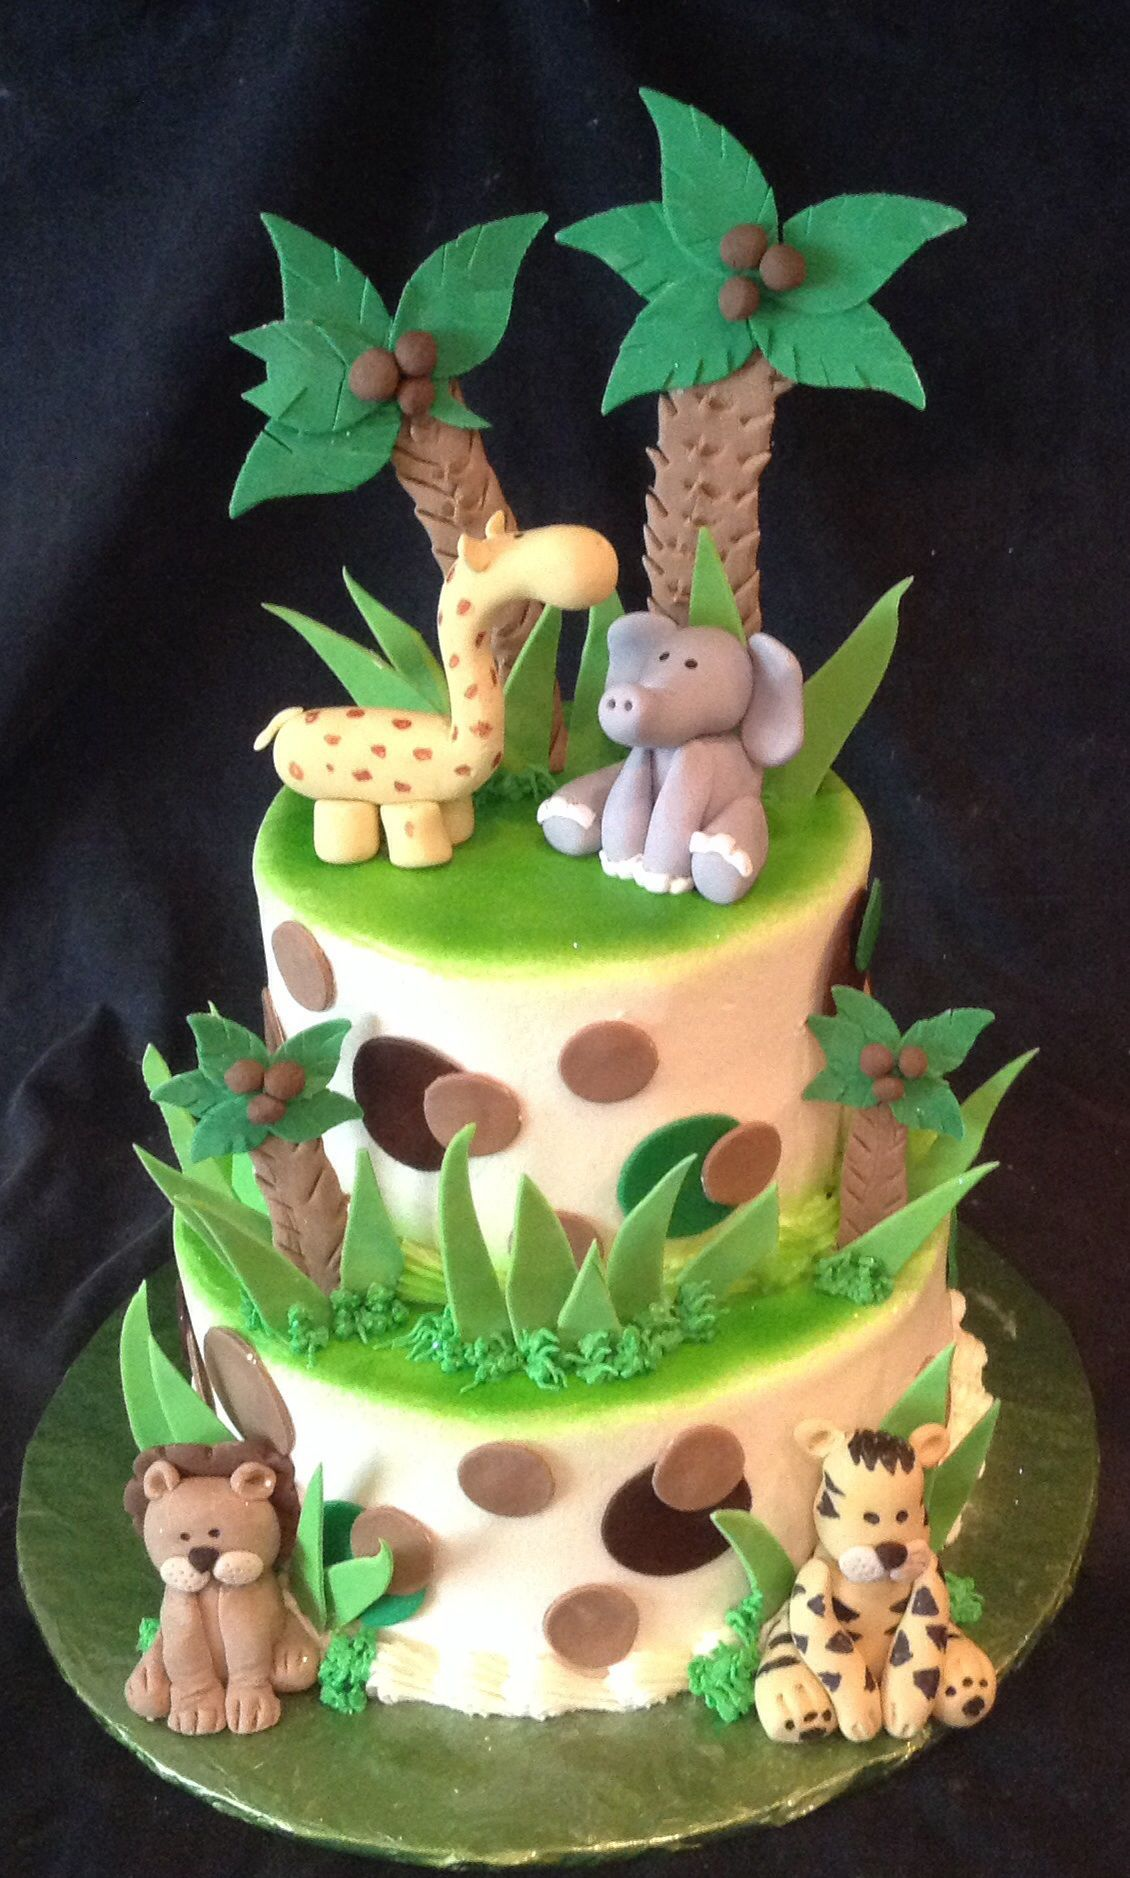 Jungle theme baby shower cake My custom cake designs